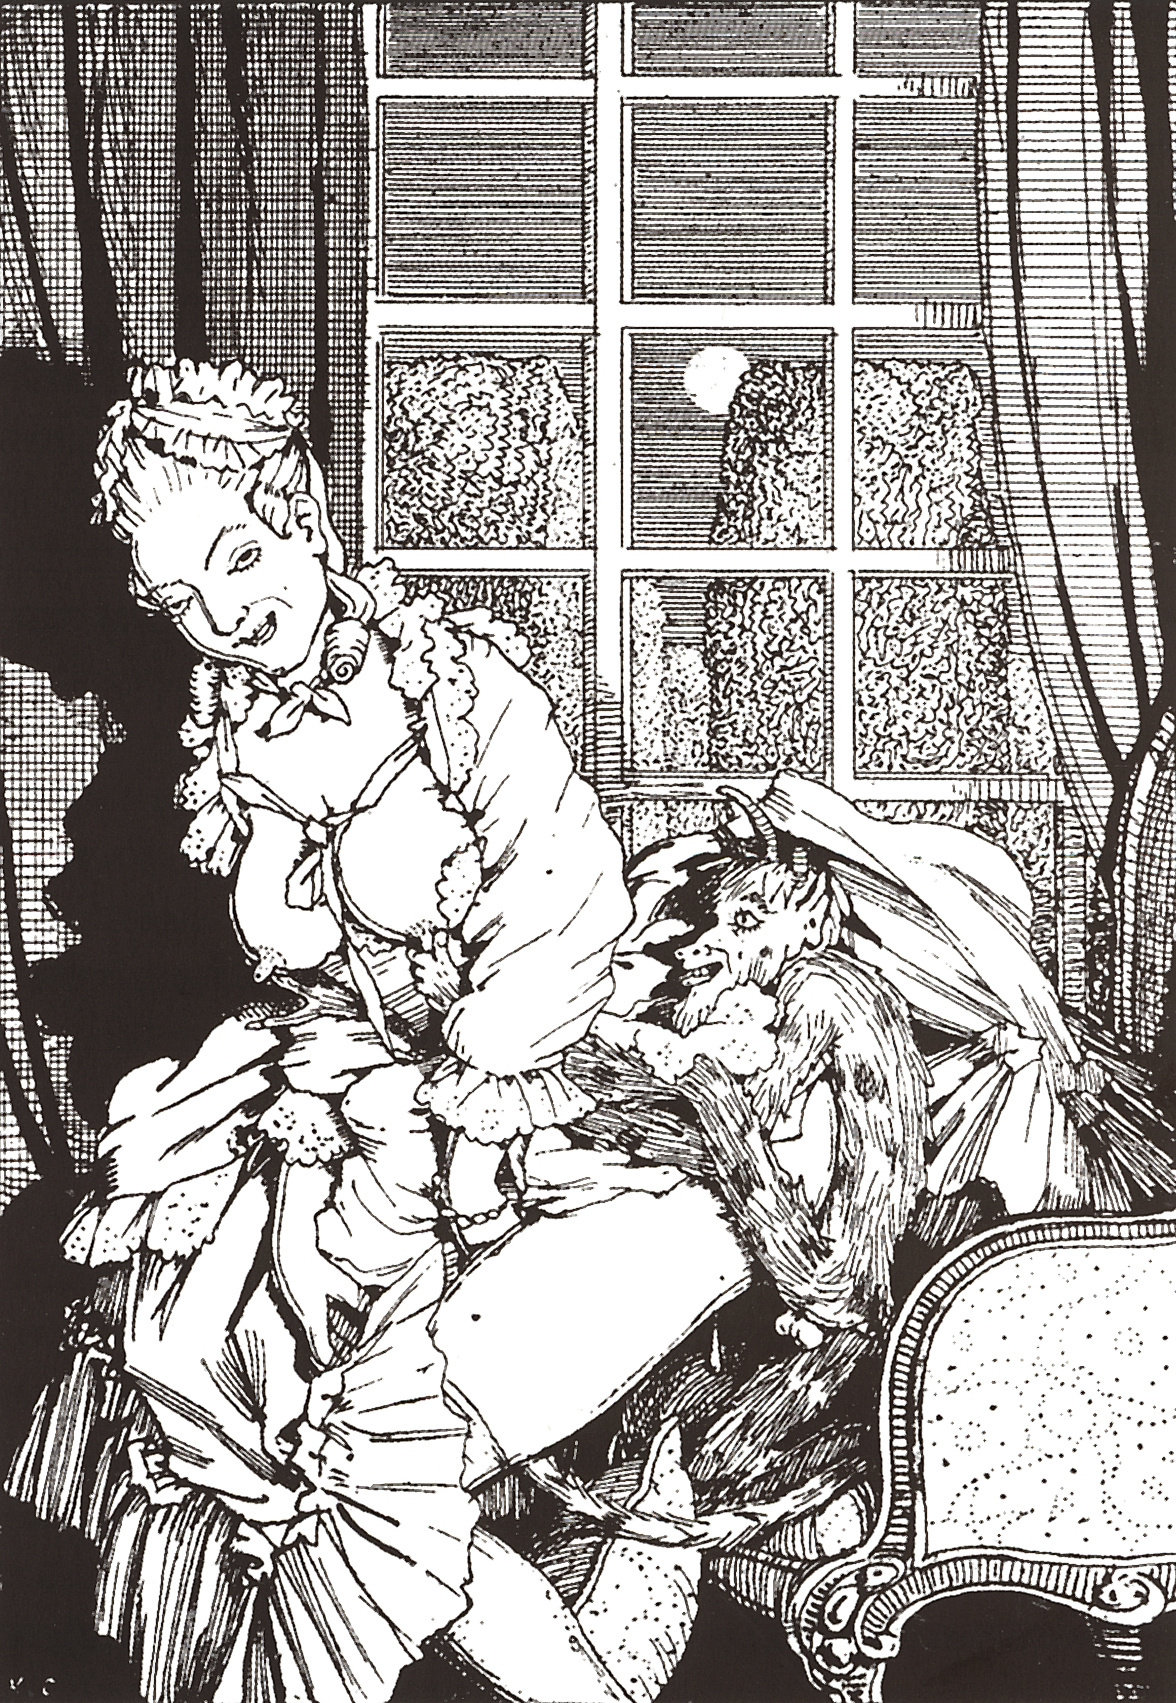 Konstantin Somov. The book of the Marquise. Illustration